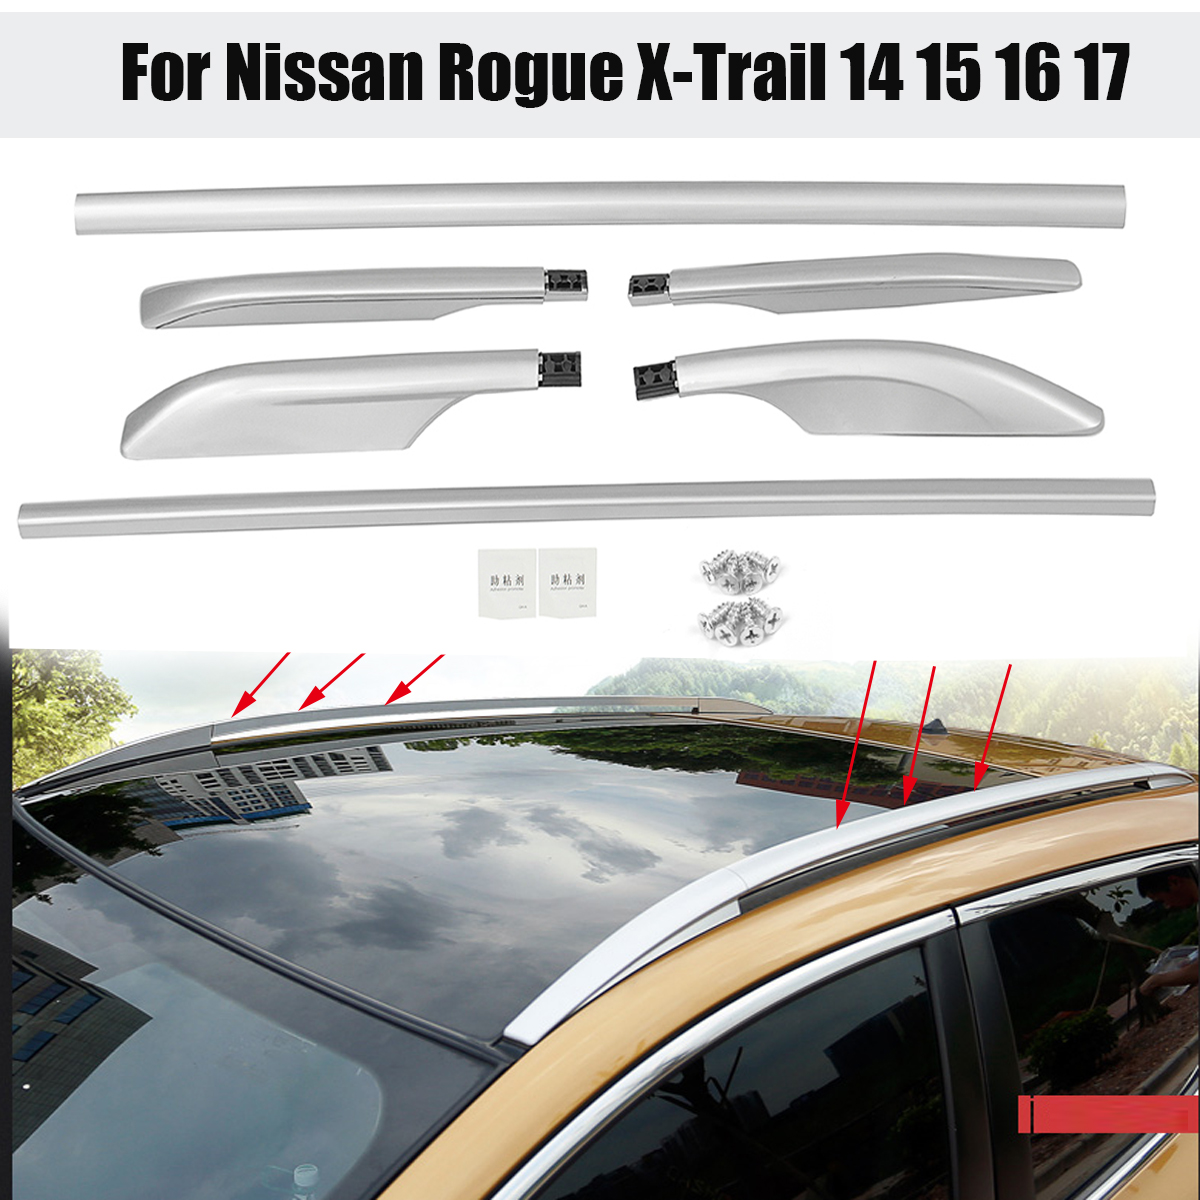 1 Set Car Roof Rack Side Rails Luggage Carrier Bar Roof Vertical Rod For Nissan Rogue X-Trail 2014 2015 2016 2017 car roof rack luggage carrier bar car accessories for renault captur 2014 2015